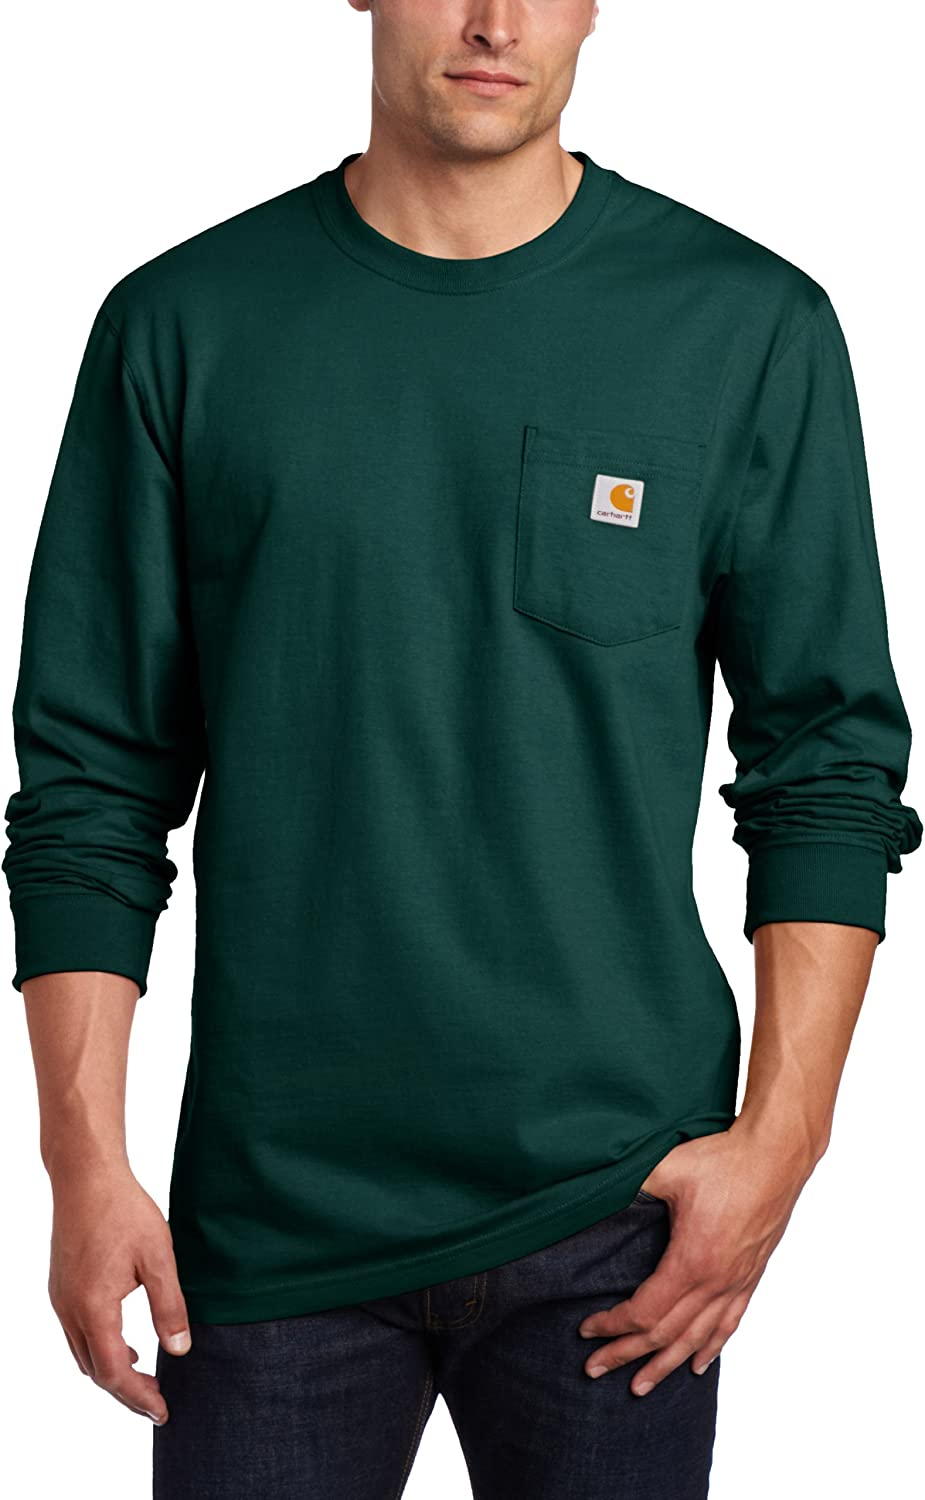 Carhartt Men's Workwear Jersey Pocket Long-Sleeve Shirt K126 (Regular and Big & Tall Sizes): Work Utility Shirts: Clothing